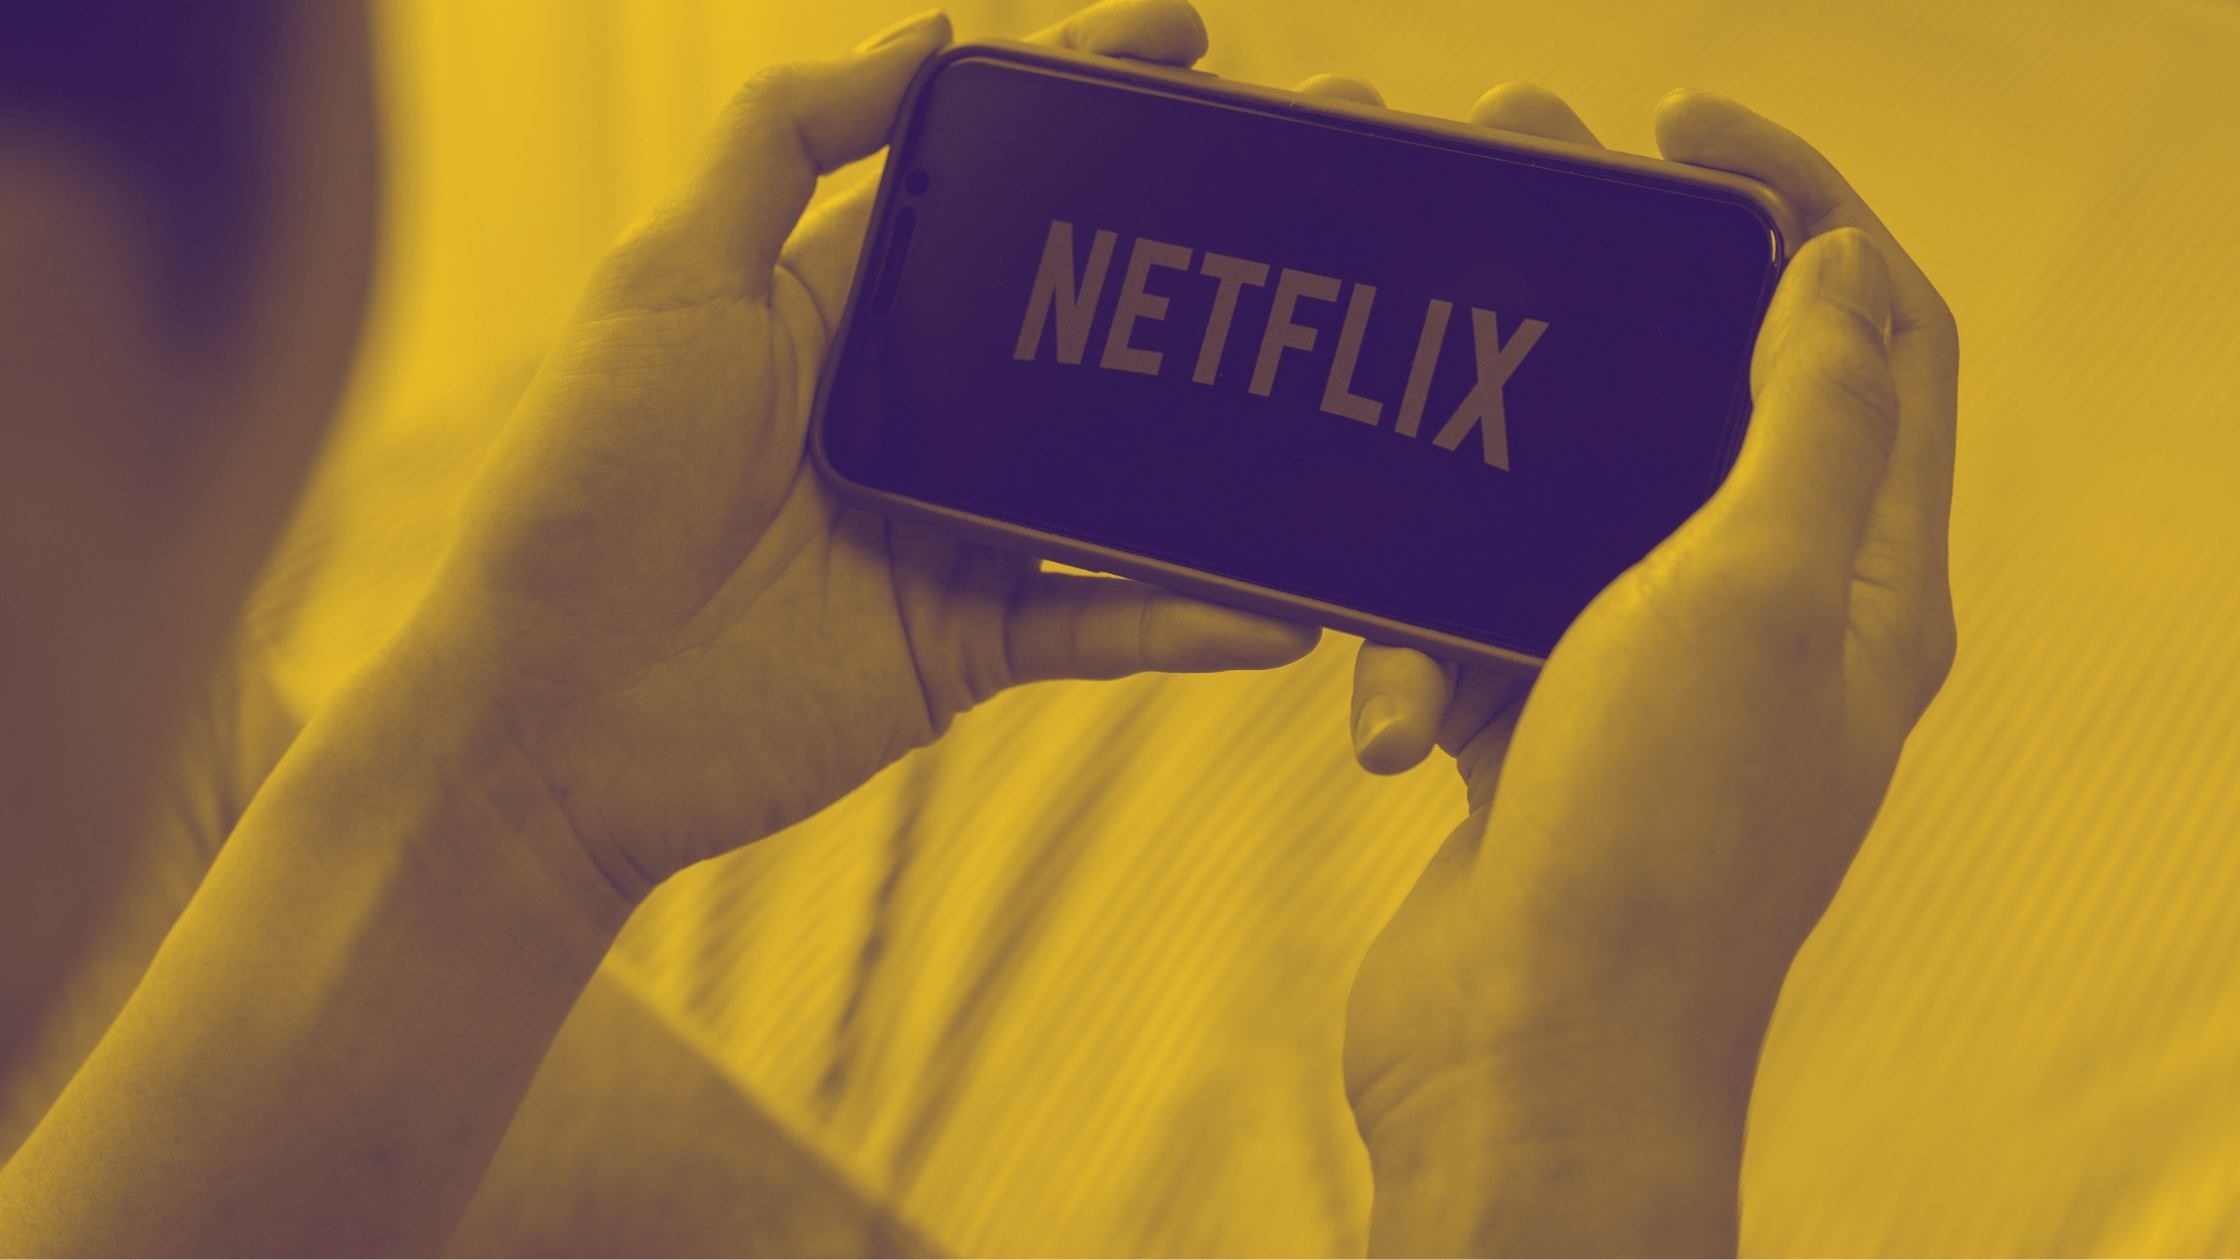 Netflix's most advertised shows in 2020